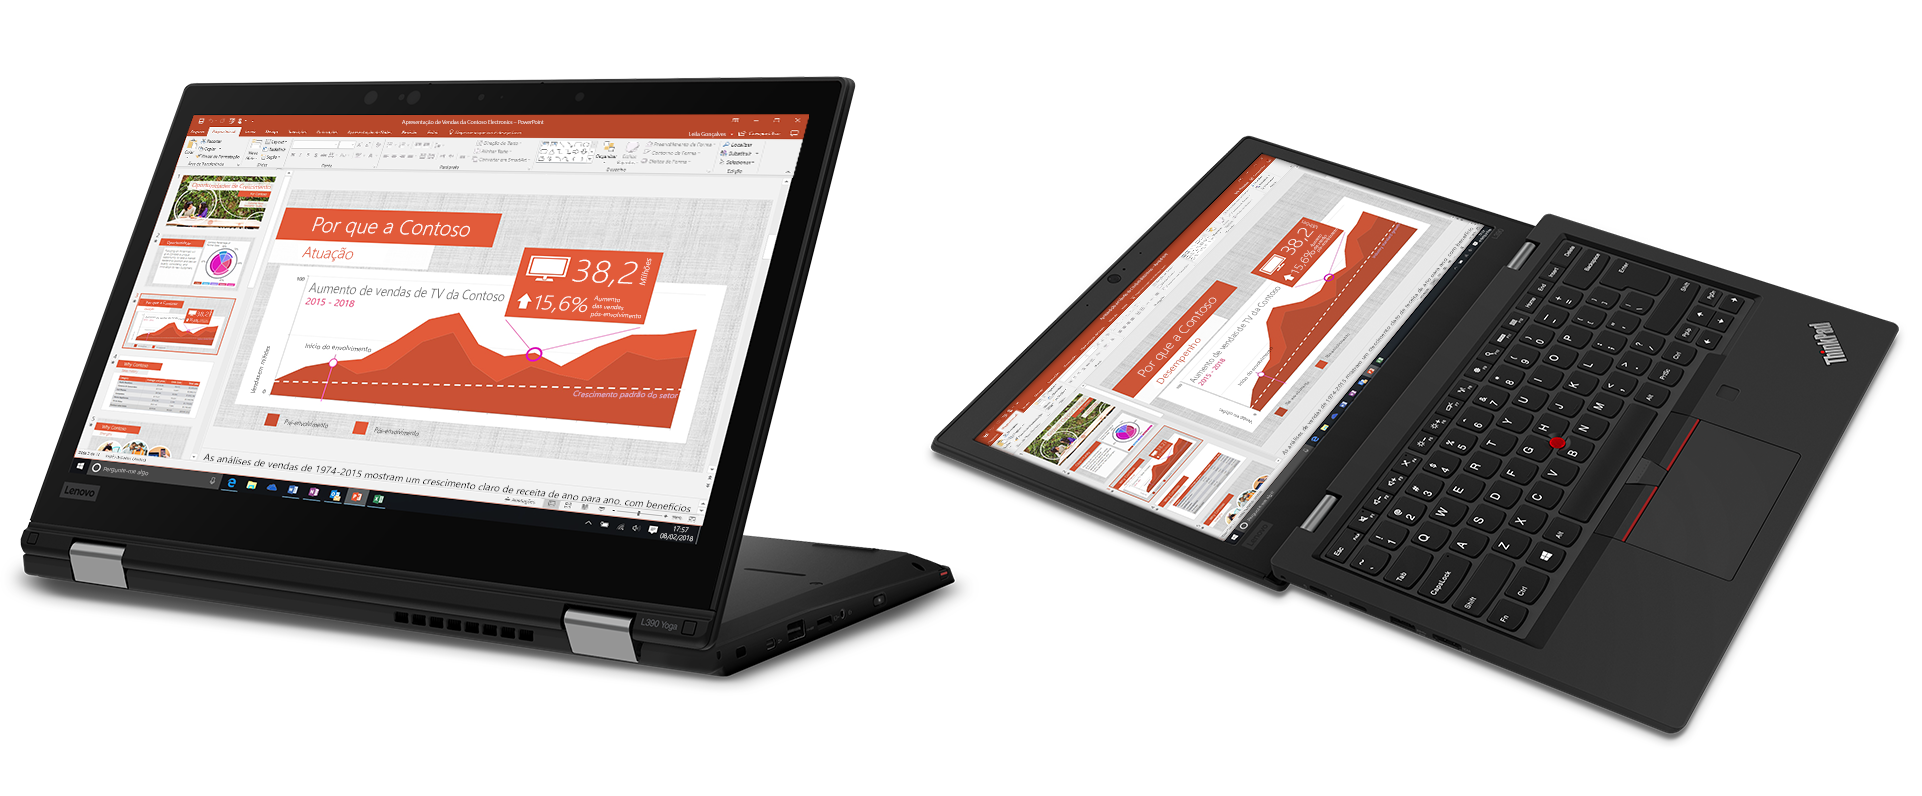 Imagem do Lenovo ThinkPad L390 e L390 Yoga.